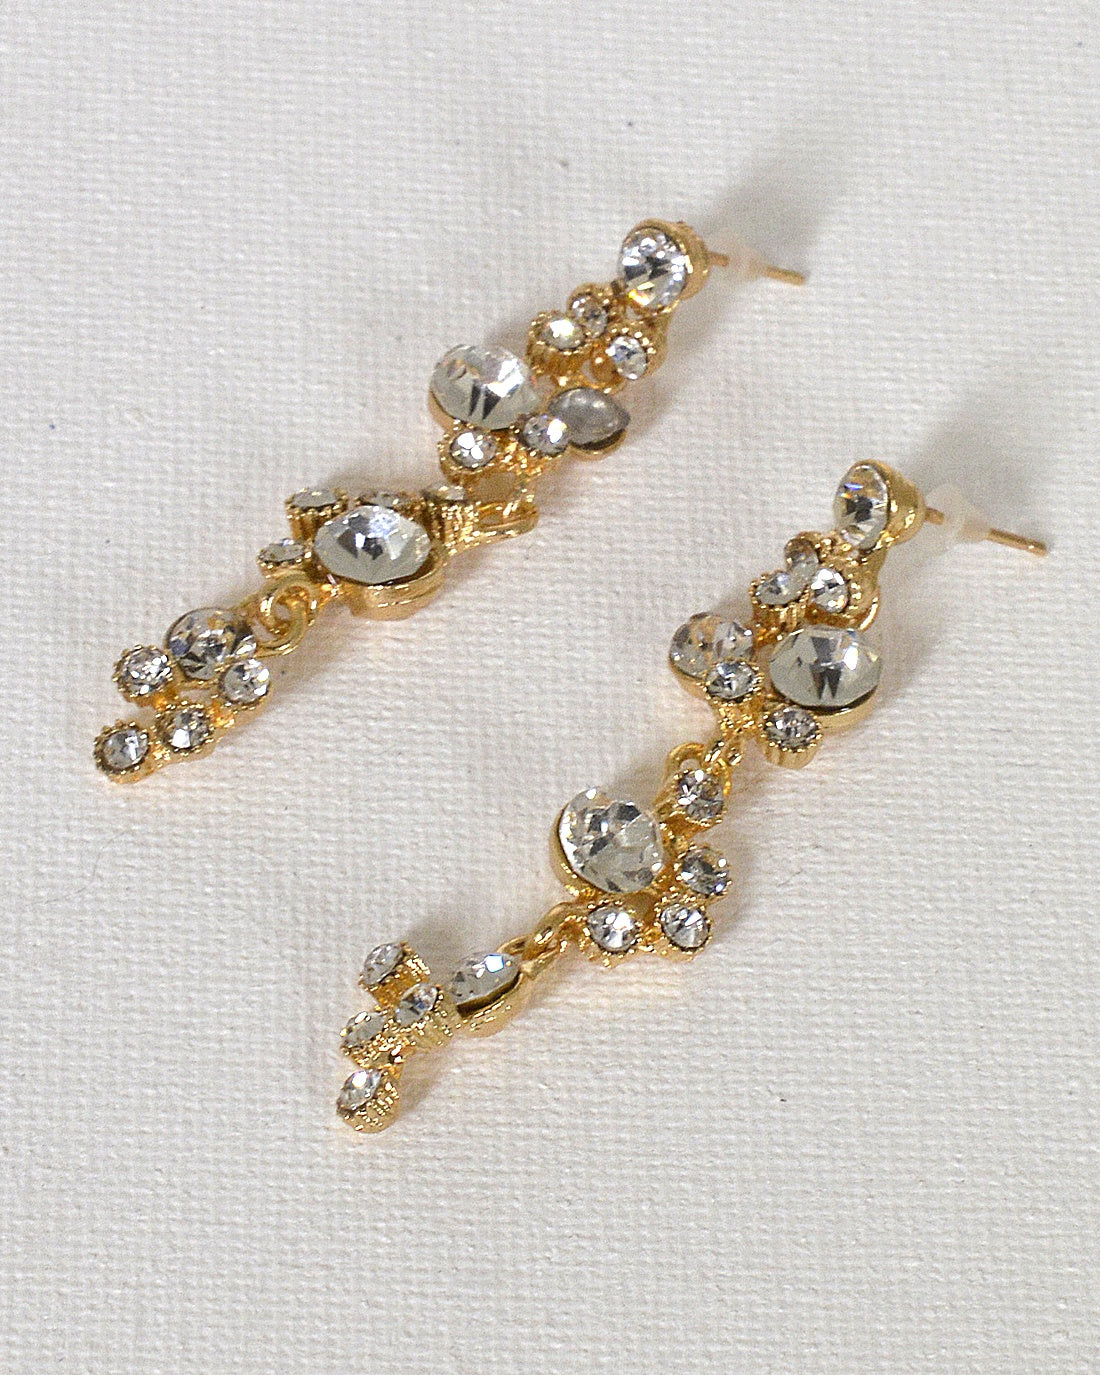 Crystal Studded Drop Earrings with Post Back Closure - Creole Couture Boutique